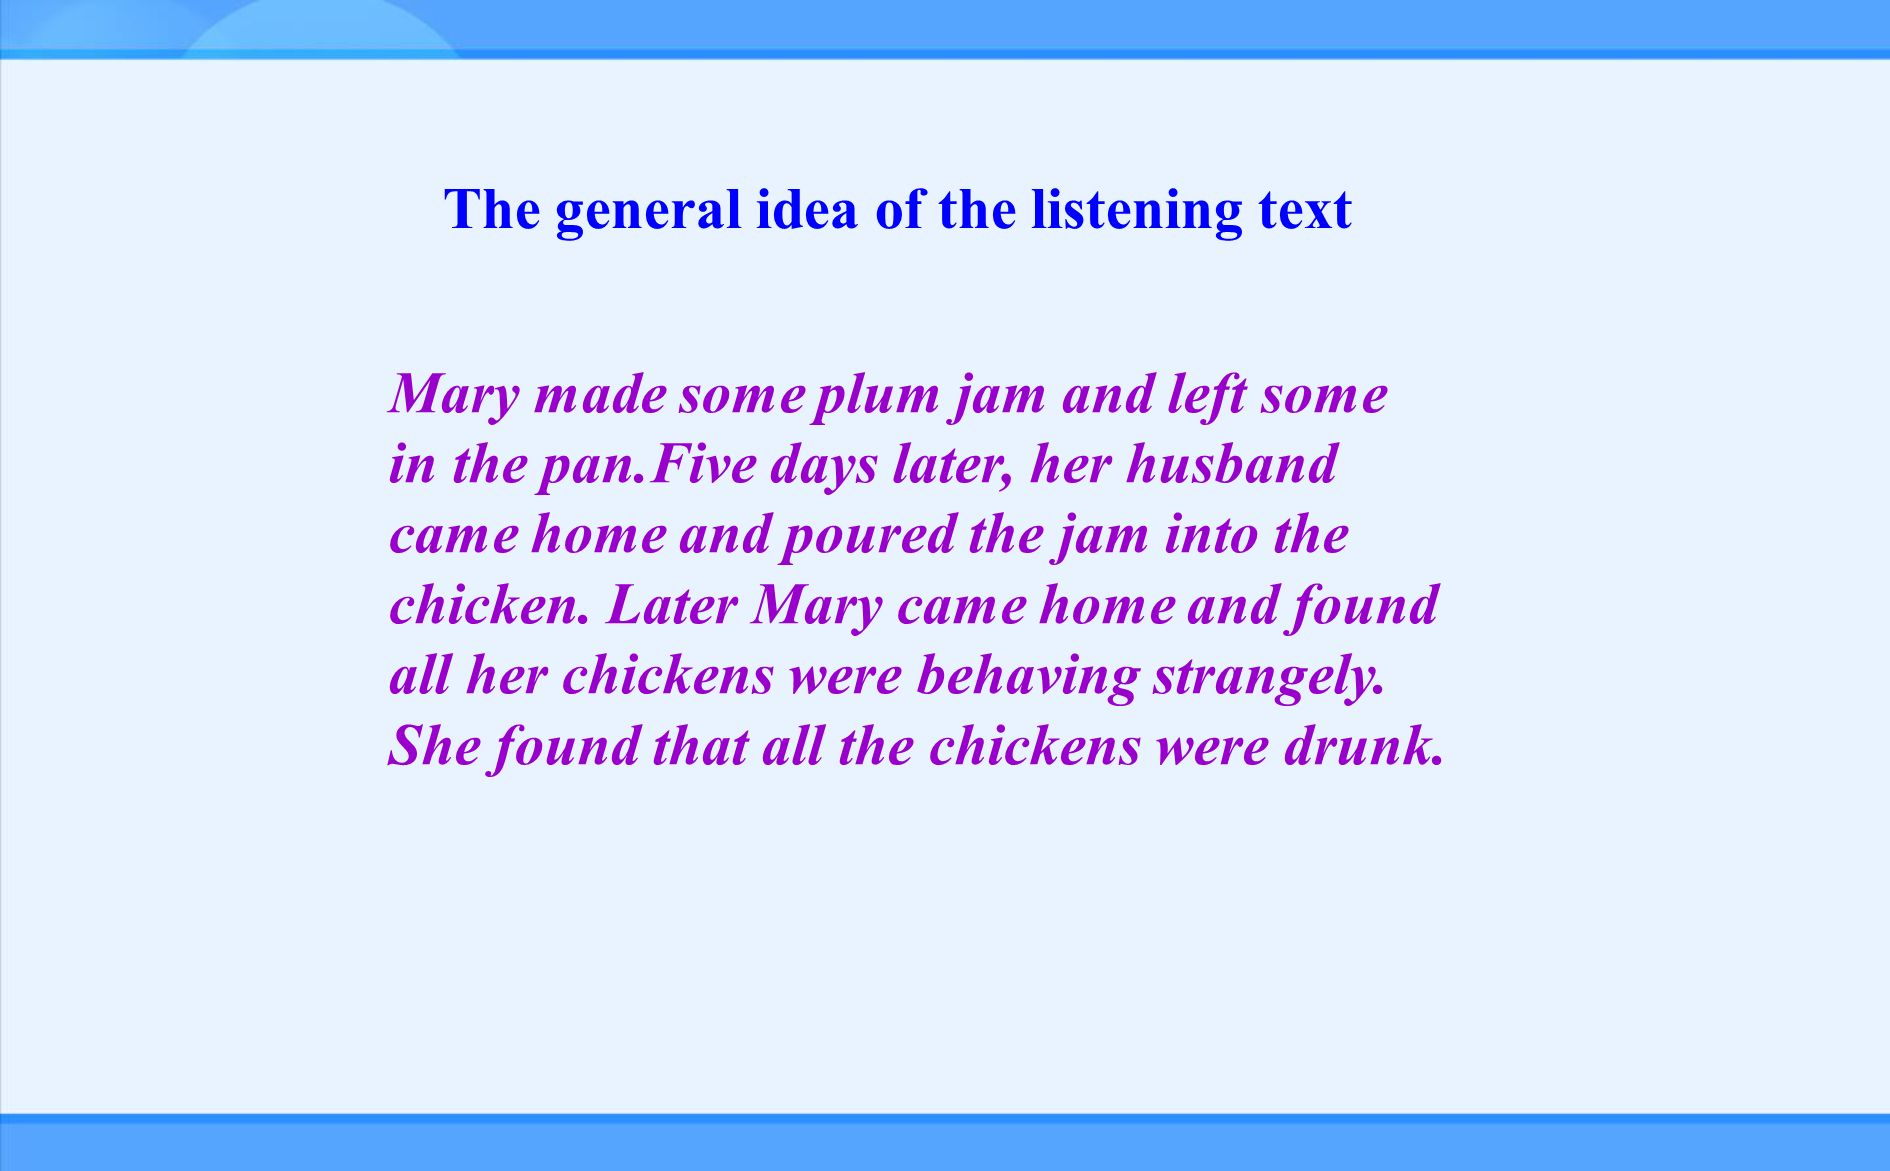 The general idea of the listening text Mary made some plum jam and left some in the pan.Five days later, her husband came home and poured the jam into the chicken.